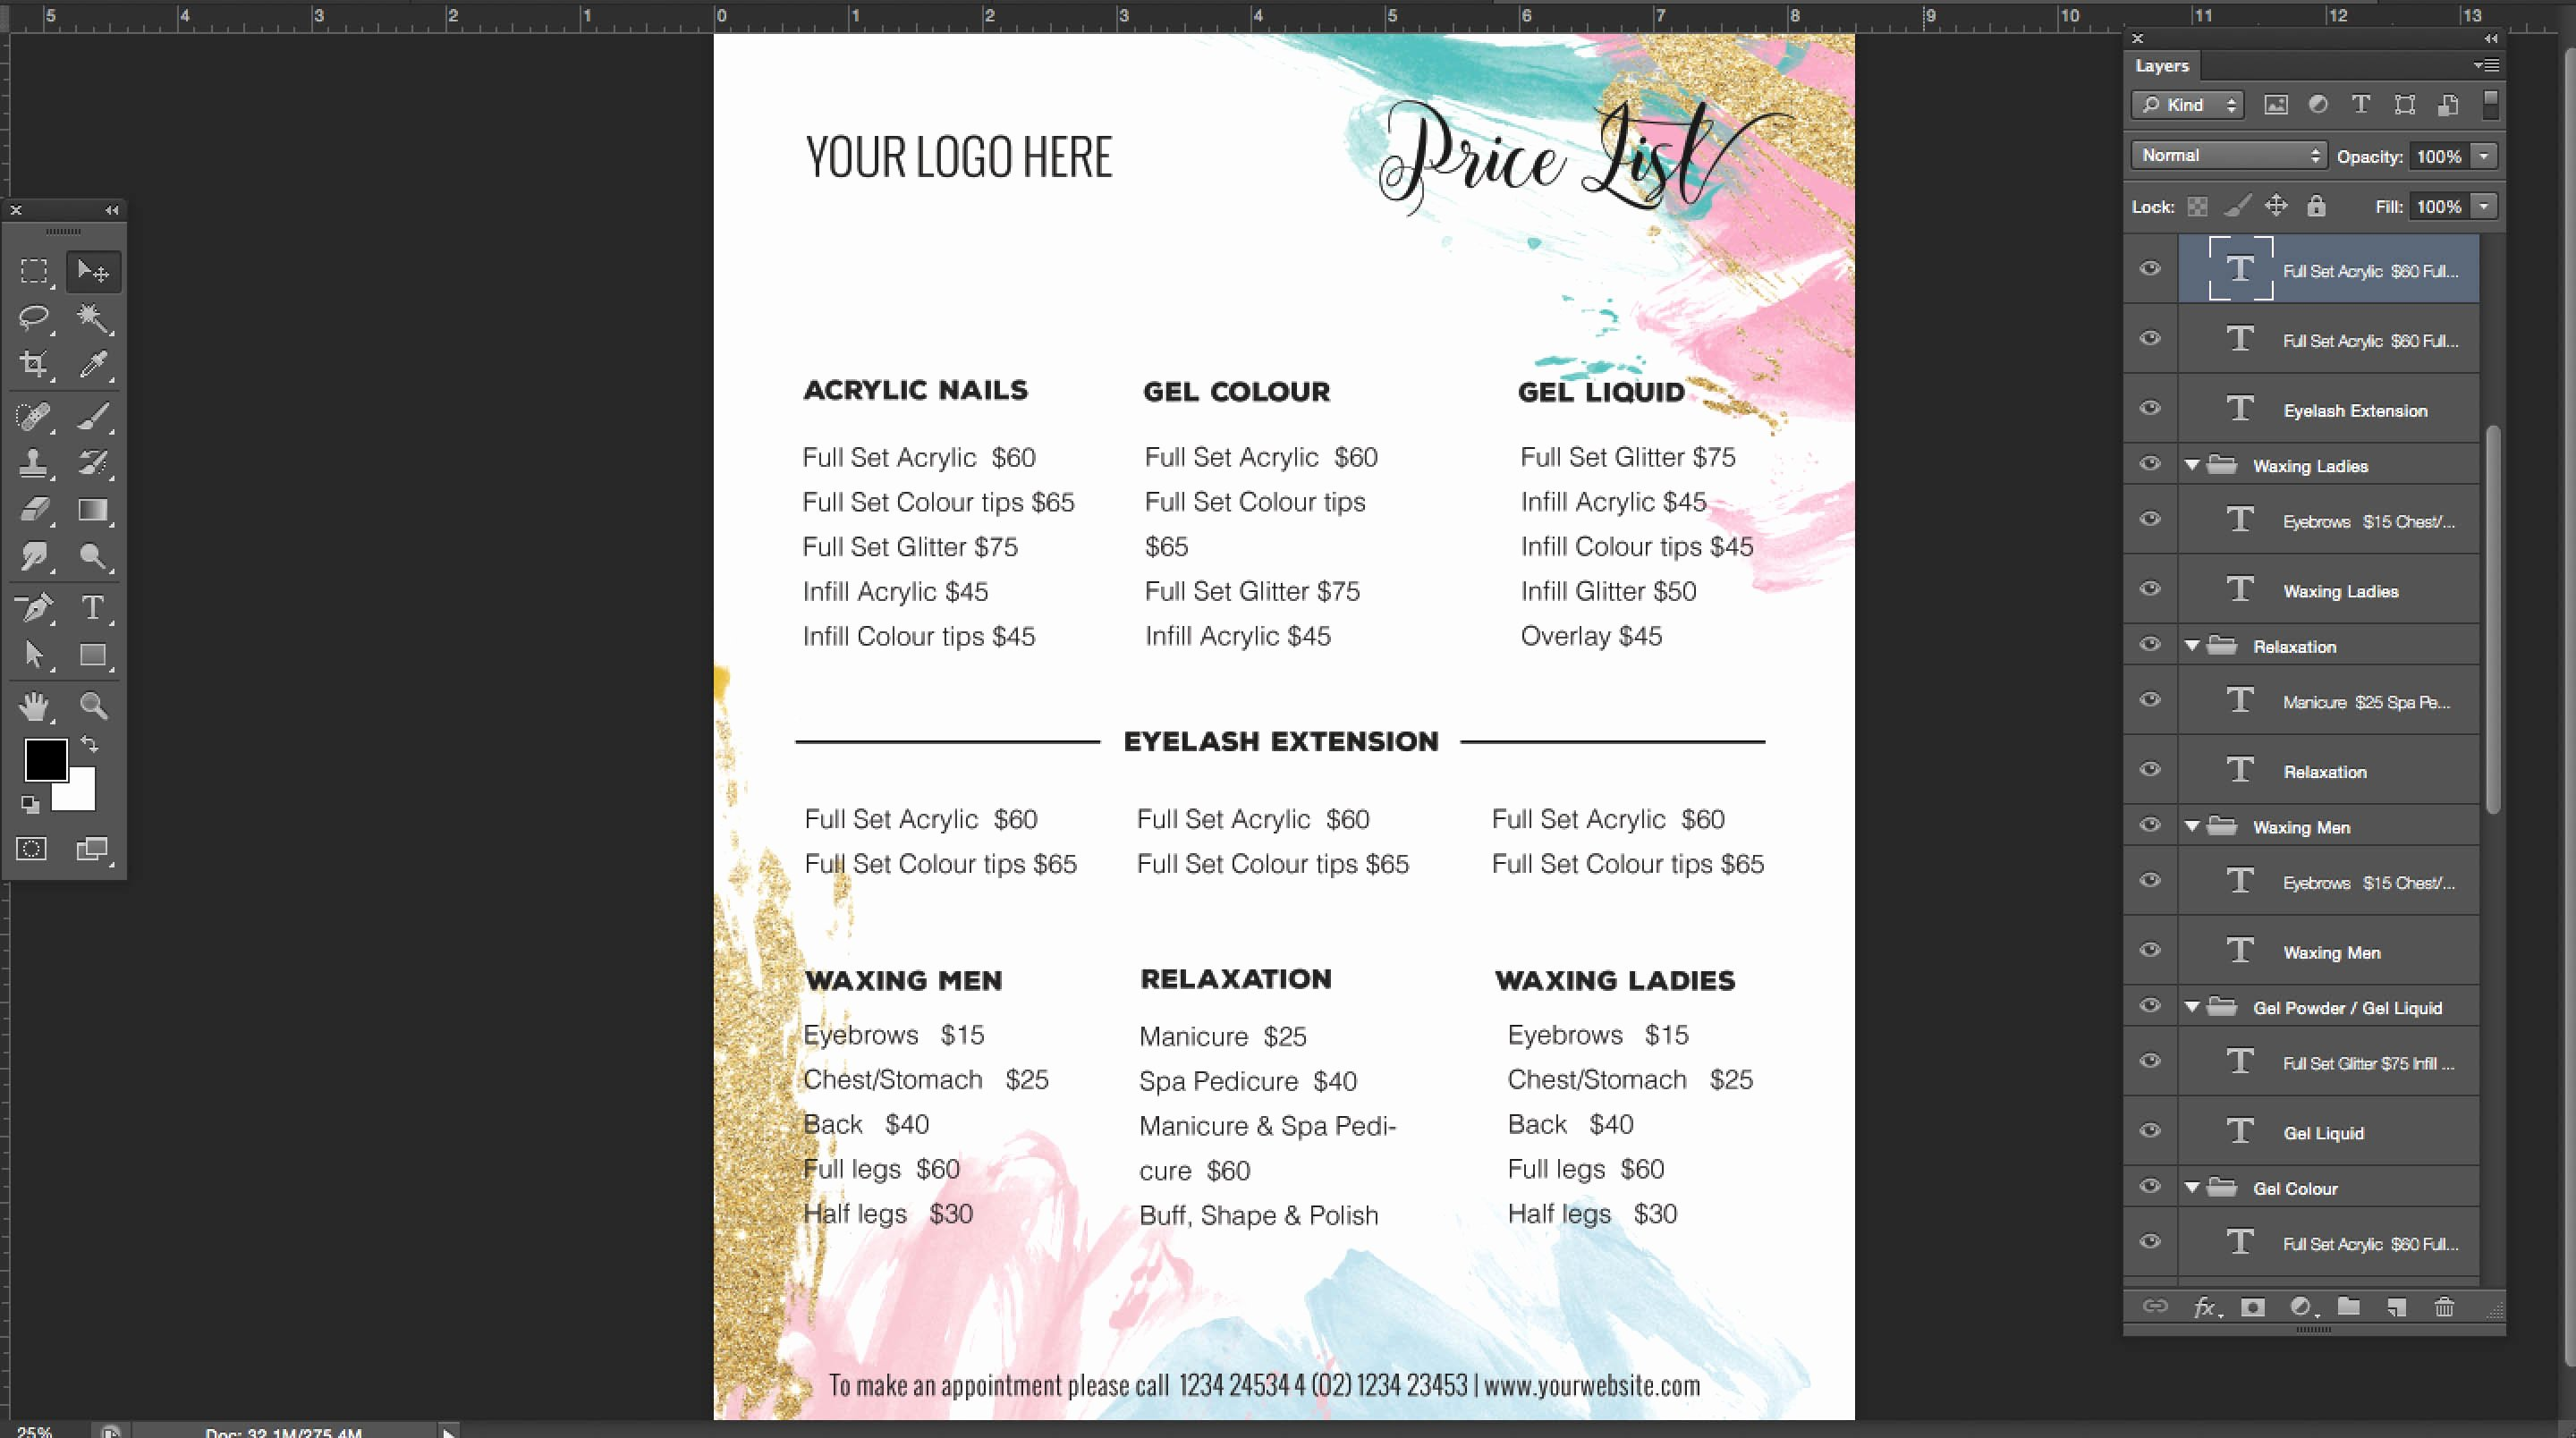 Price List Design Template Inspirational Pricing List Template Price List Template Menu Template